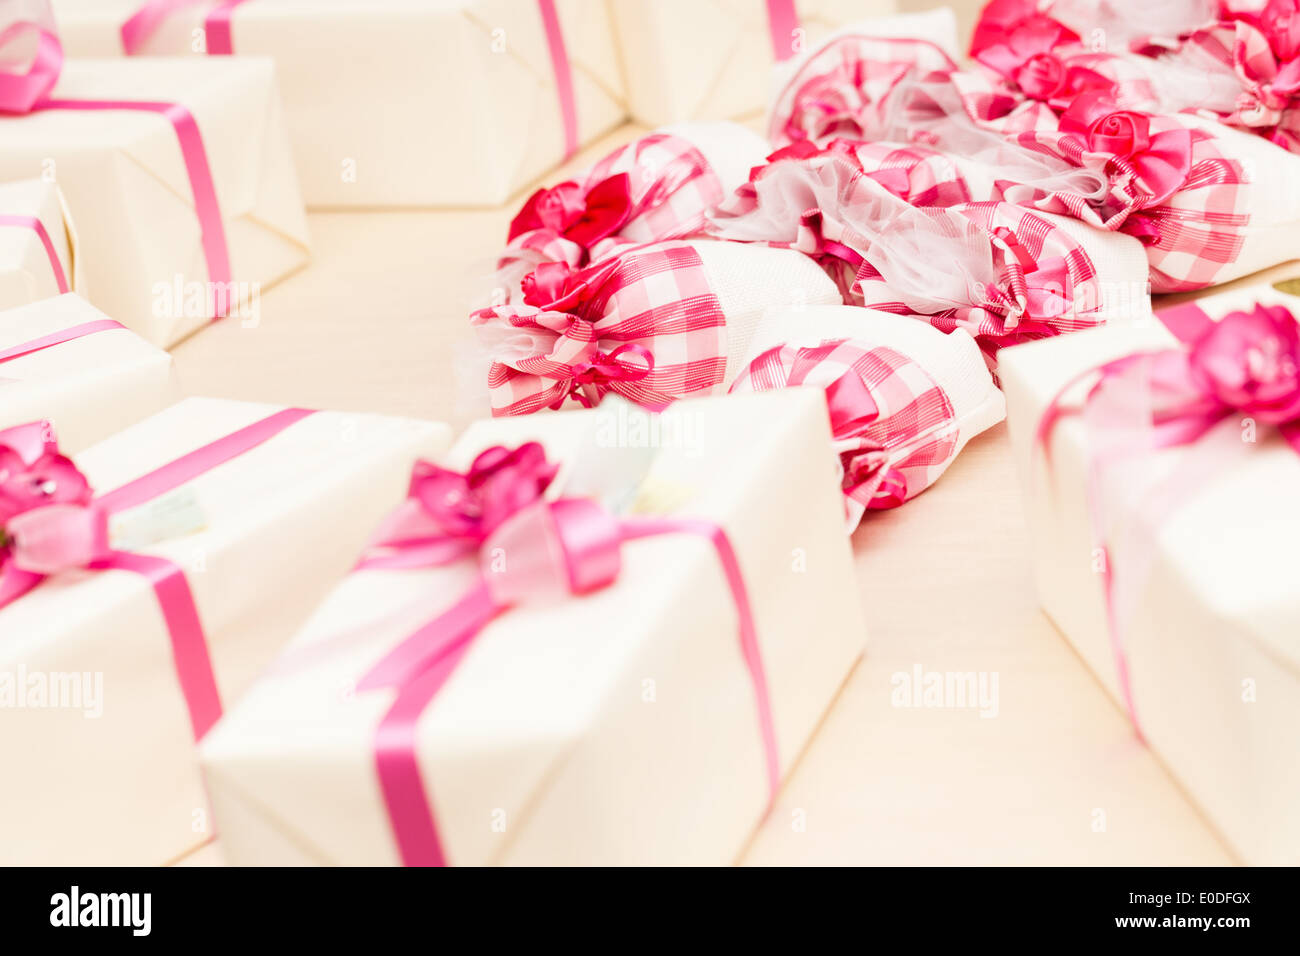 Wrapped Wedding Favors Stock Photos & Wrapped Wedding Favors Stock ...